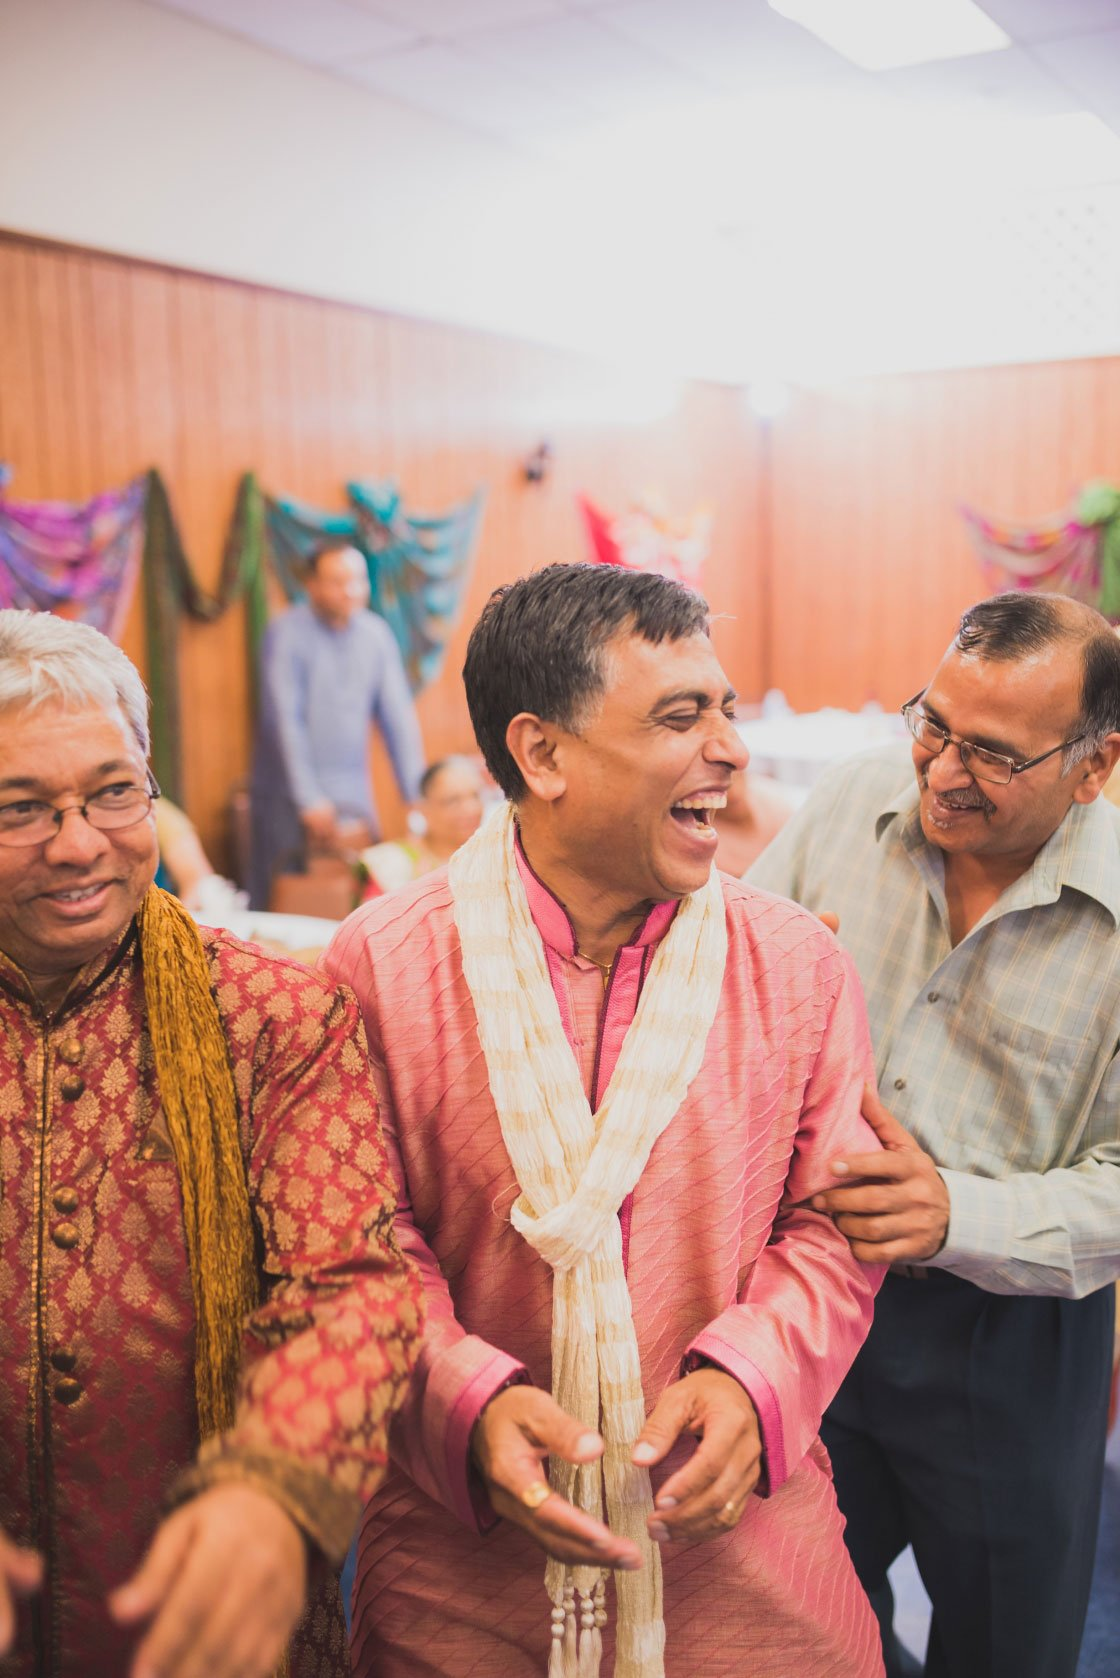 Indian Wedding Photography Morristown, NJ